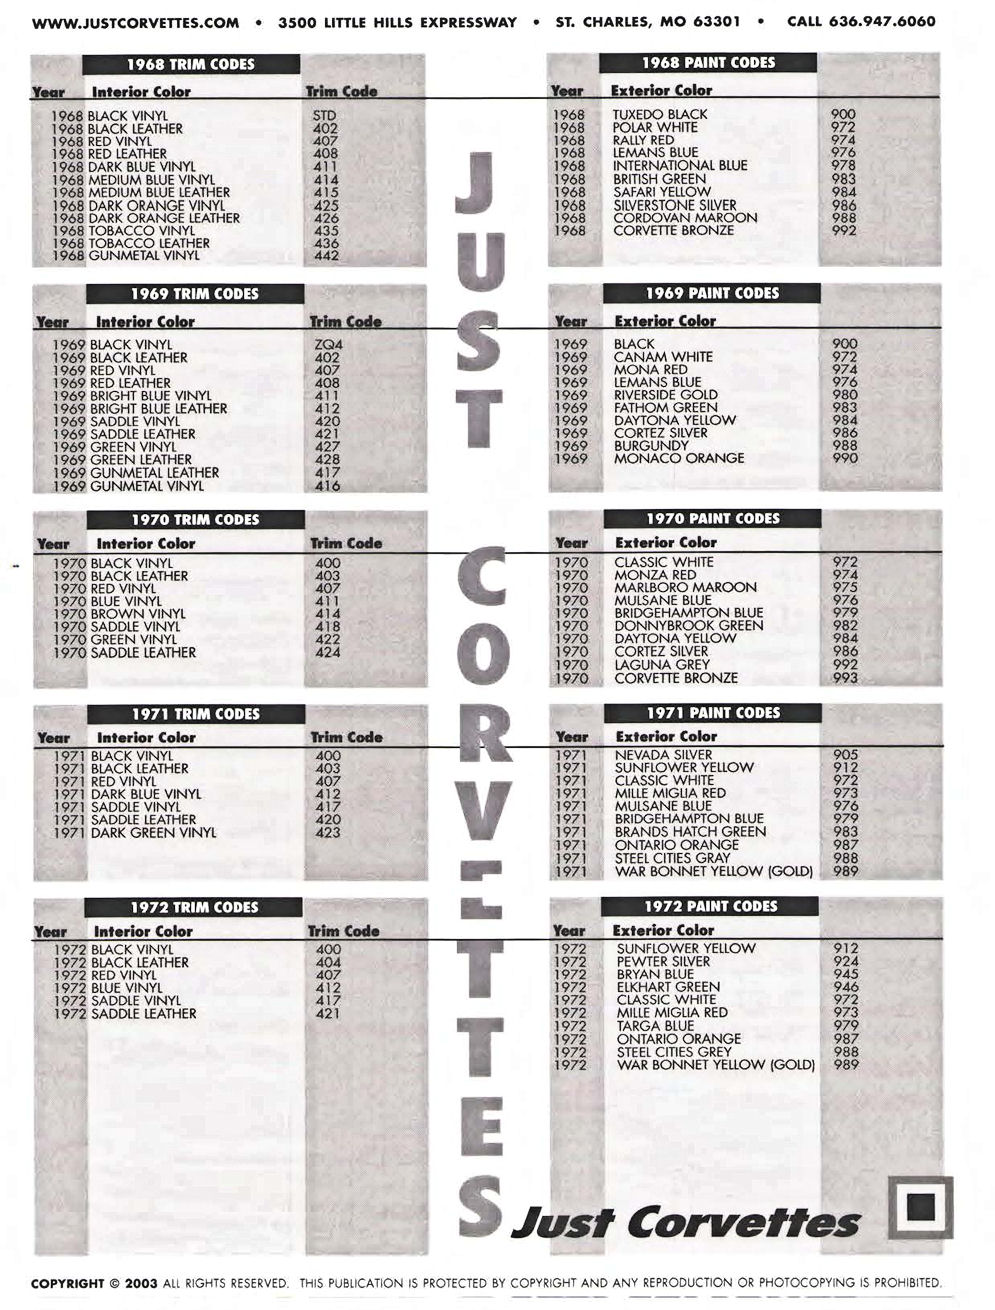 Largest Used Corvette Parts C3 Corvette Parts Index 1968 - 1982